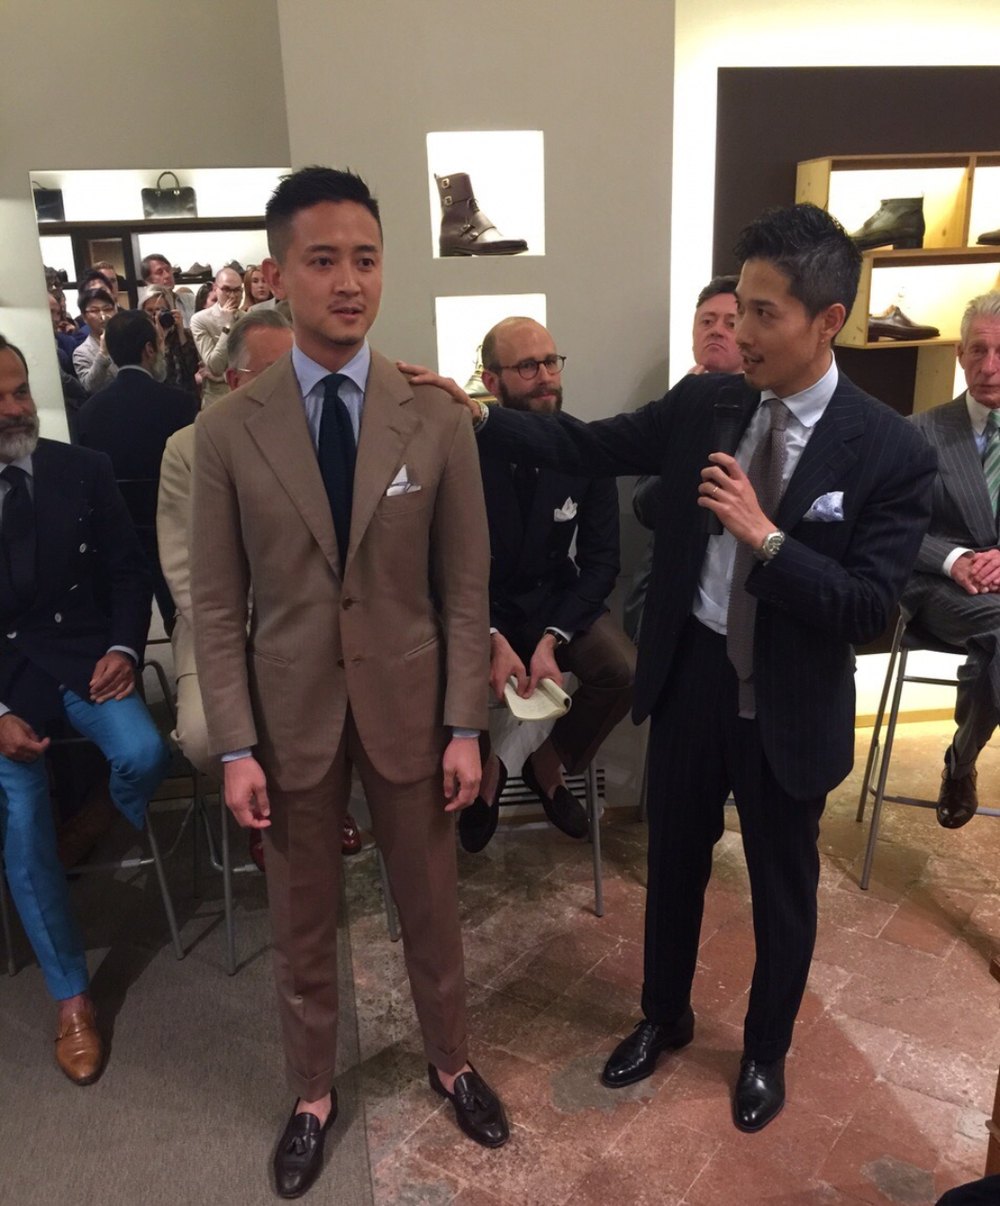 (Alan See, The Armoury Hong Kong serves as a demonstration model as Takahiro Osaki (AKA Taka), Liverano & Liverano discusses and shows the crowd what lies behind the art and craftsmanship of a Liverano Bespoke Garment.